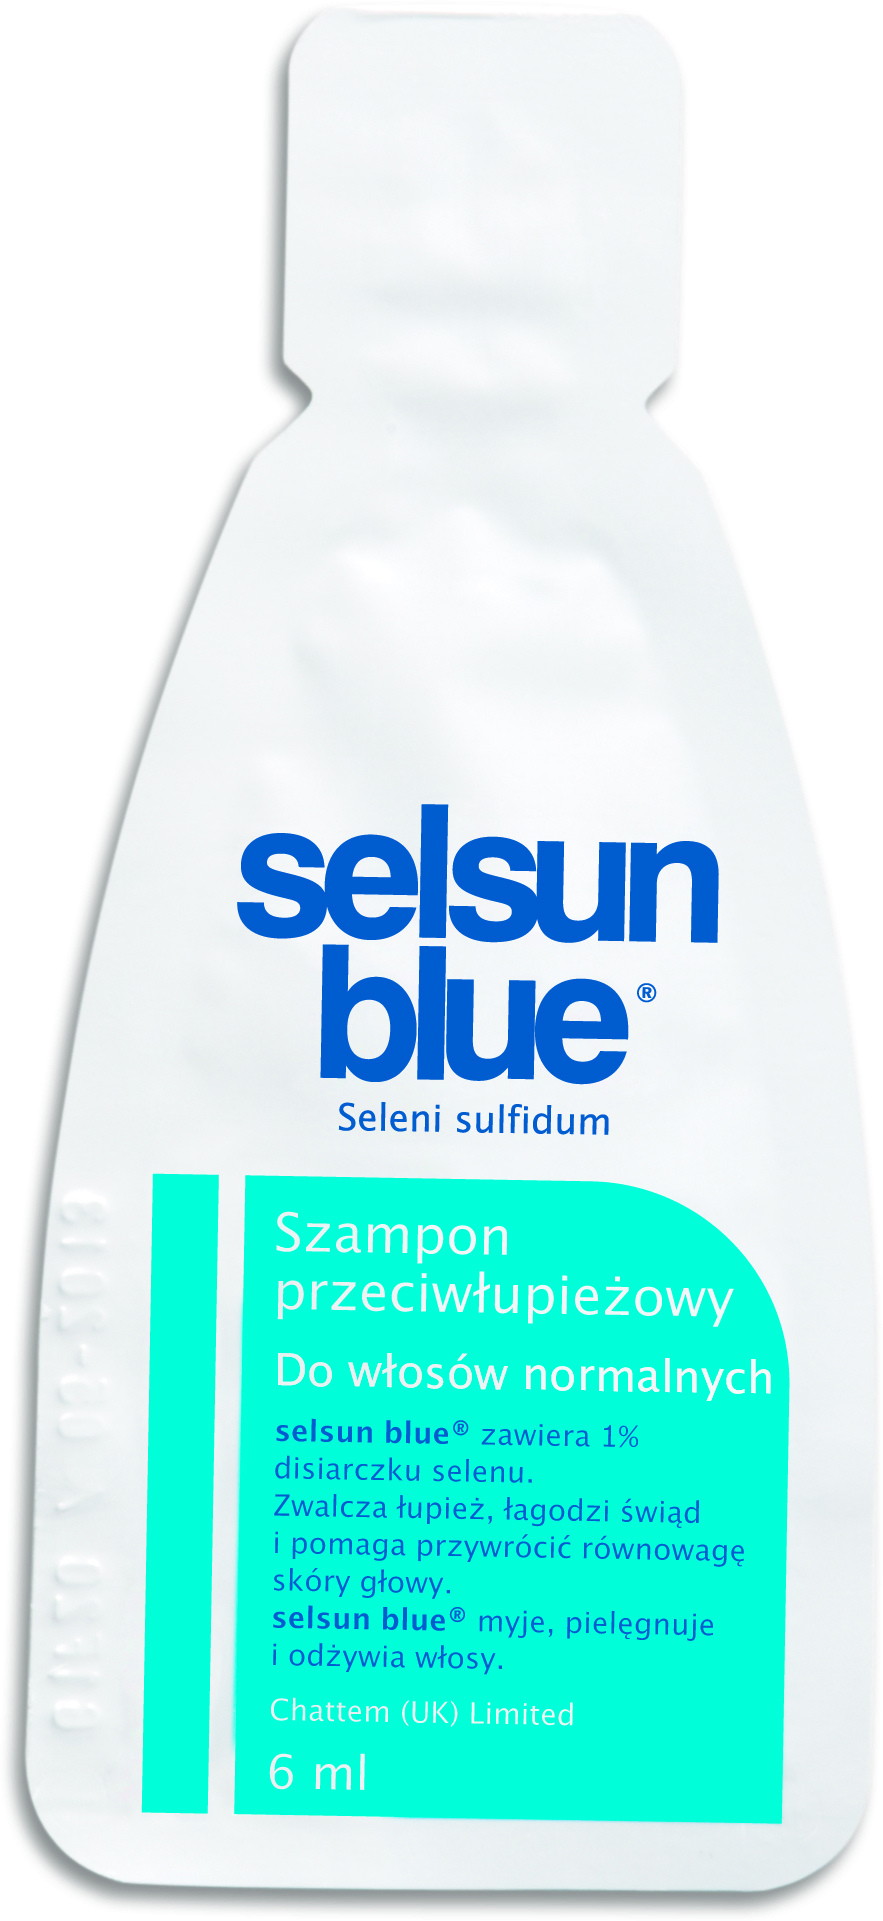 Selsun Blue do Normalnych.jpg